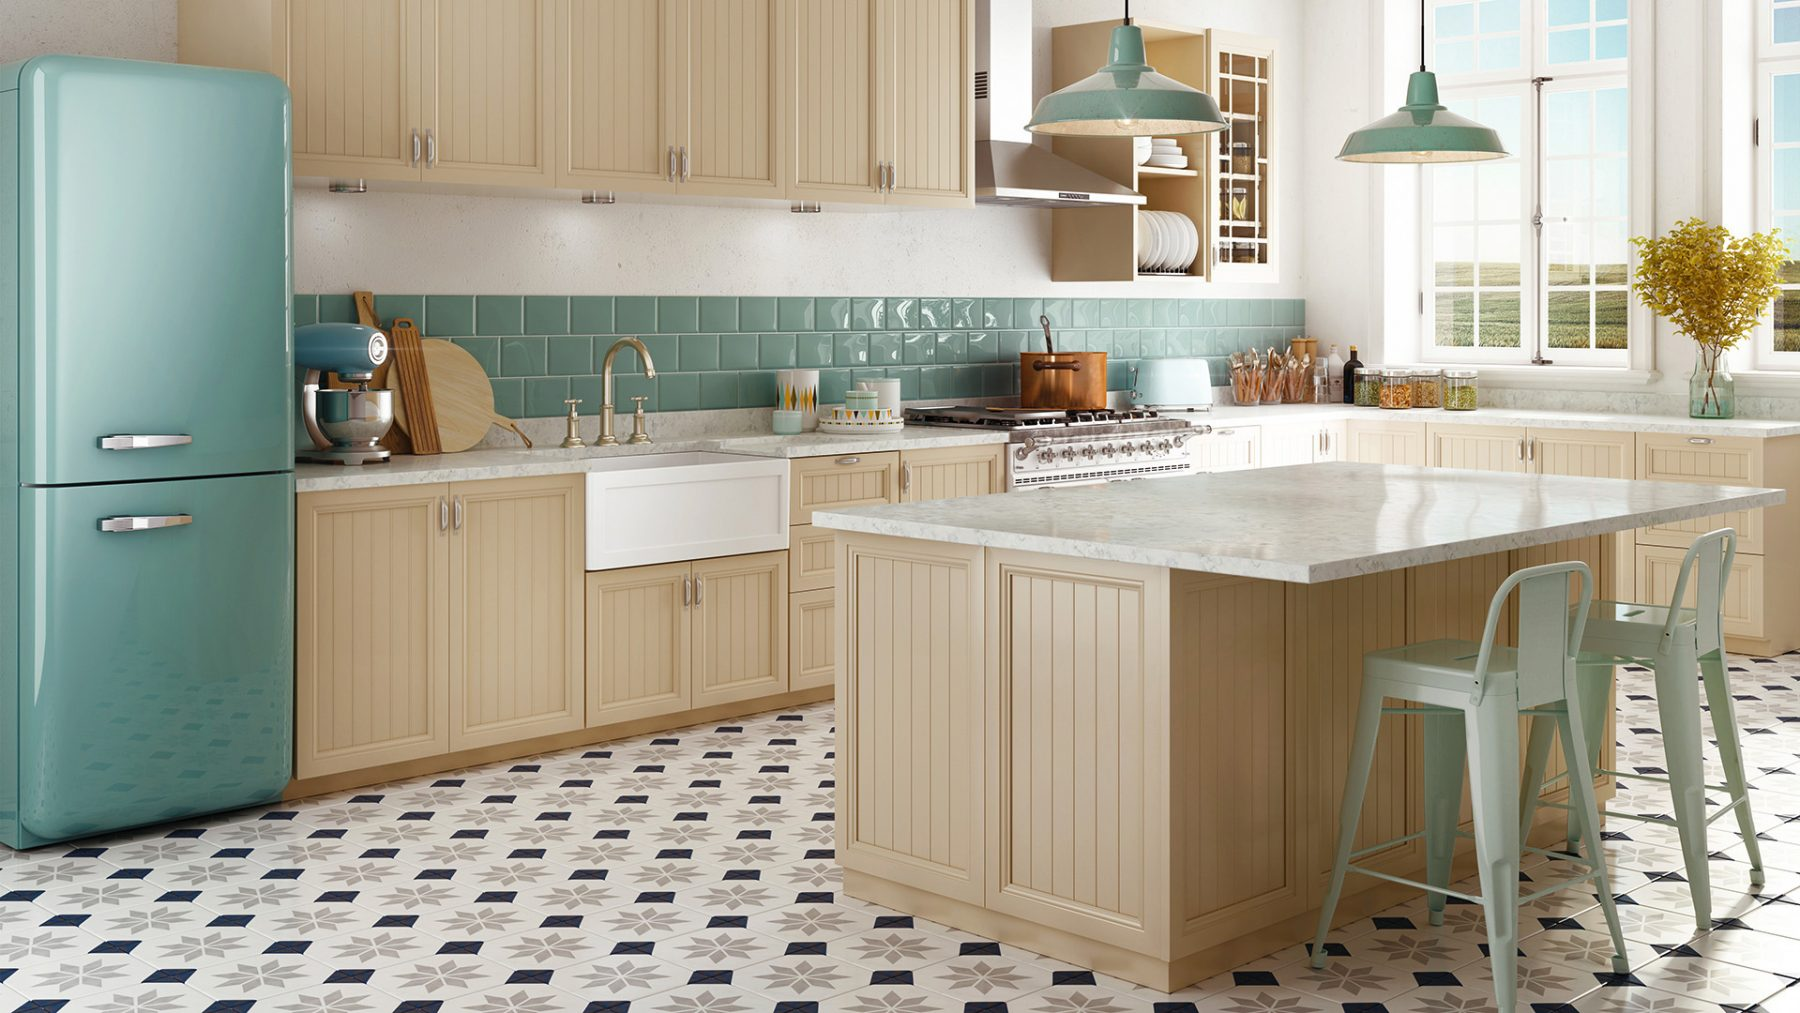 3d photo retro vintage kitchen design